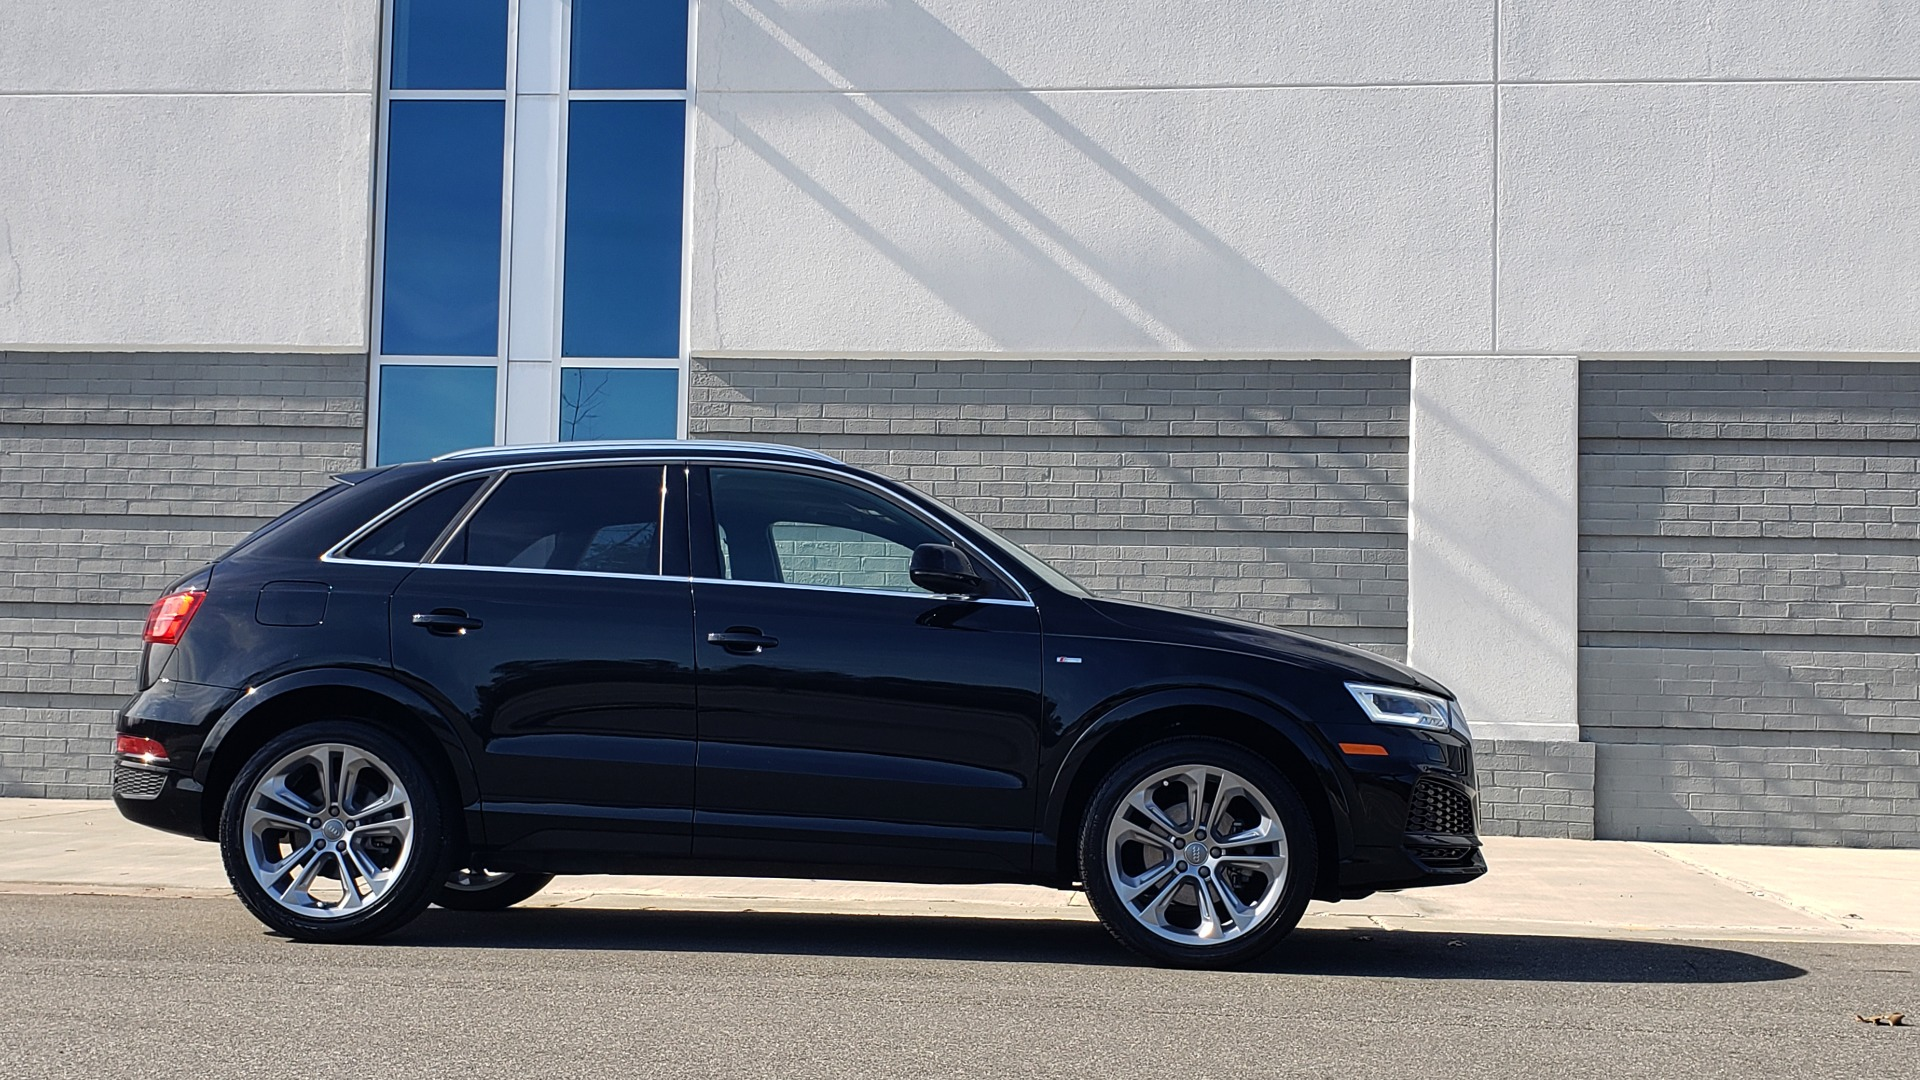 Used 2018 Audi Q3 SPORT PREMIUM PLUS / TECHNOLOGY / SUNROOF / BOSE / REARVIEW for sale Sold at Formula Imports in Charlotte NC 28227 7